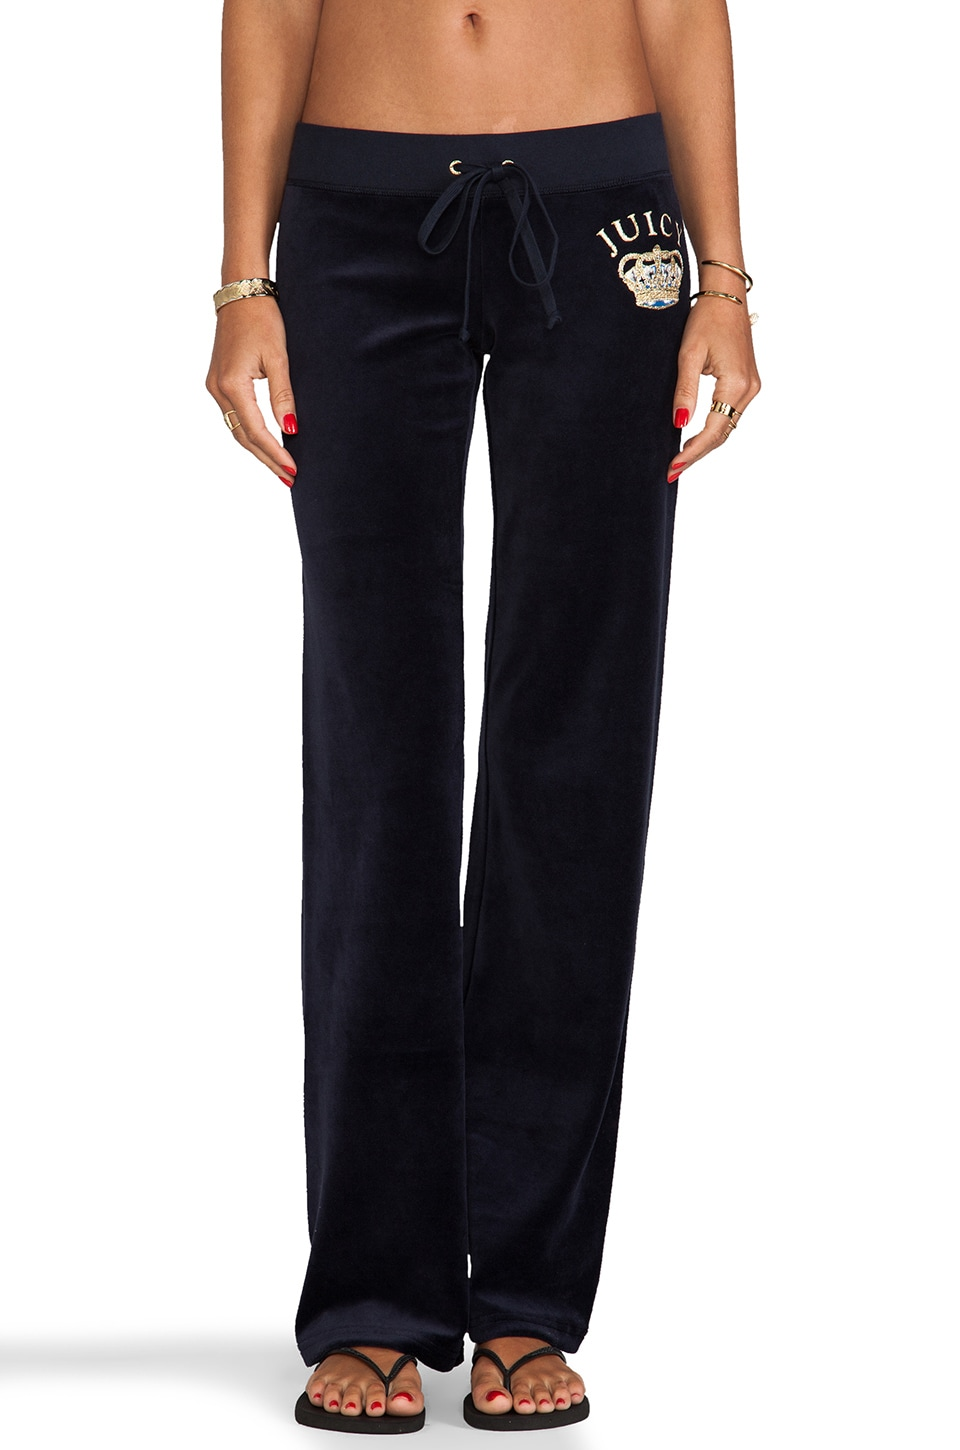 Juicy Couture Crown Velour Original Pant in Regal